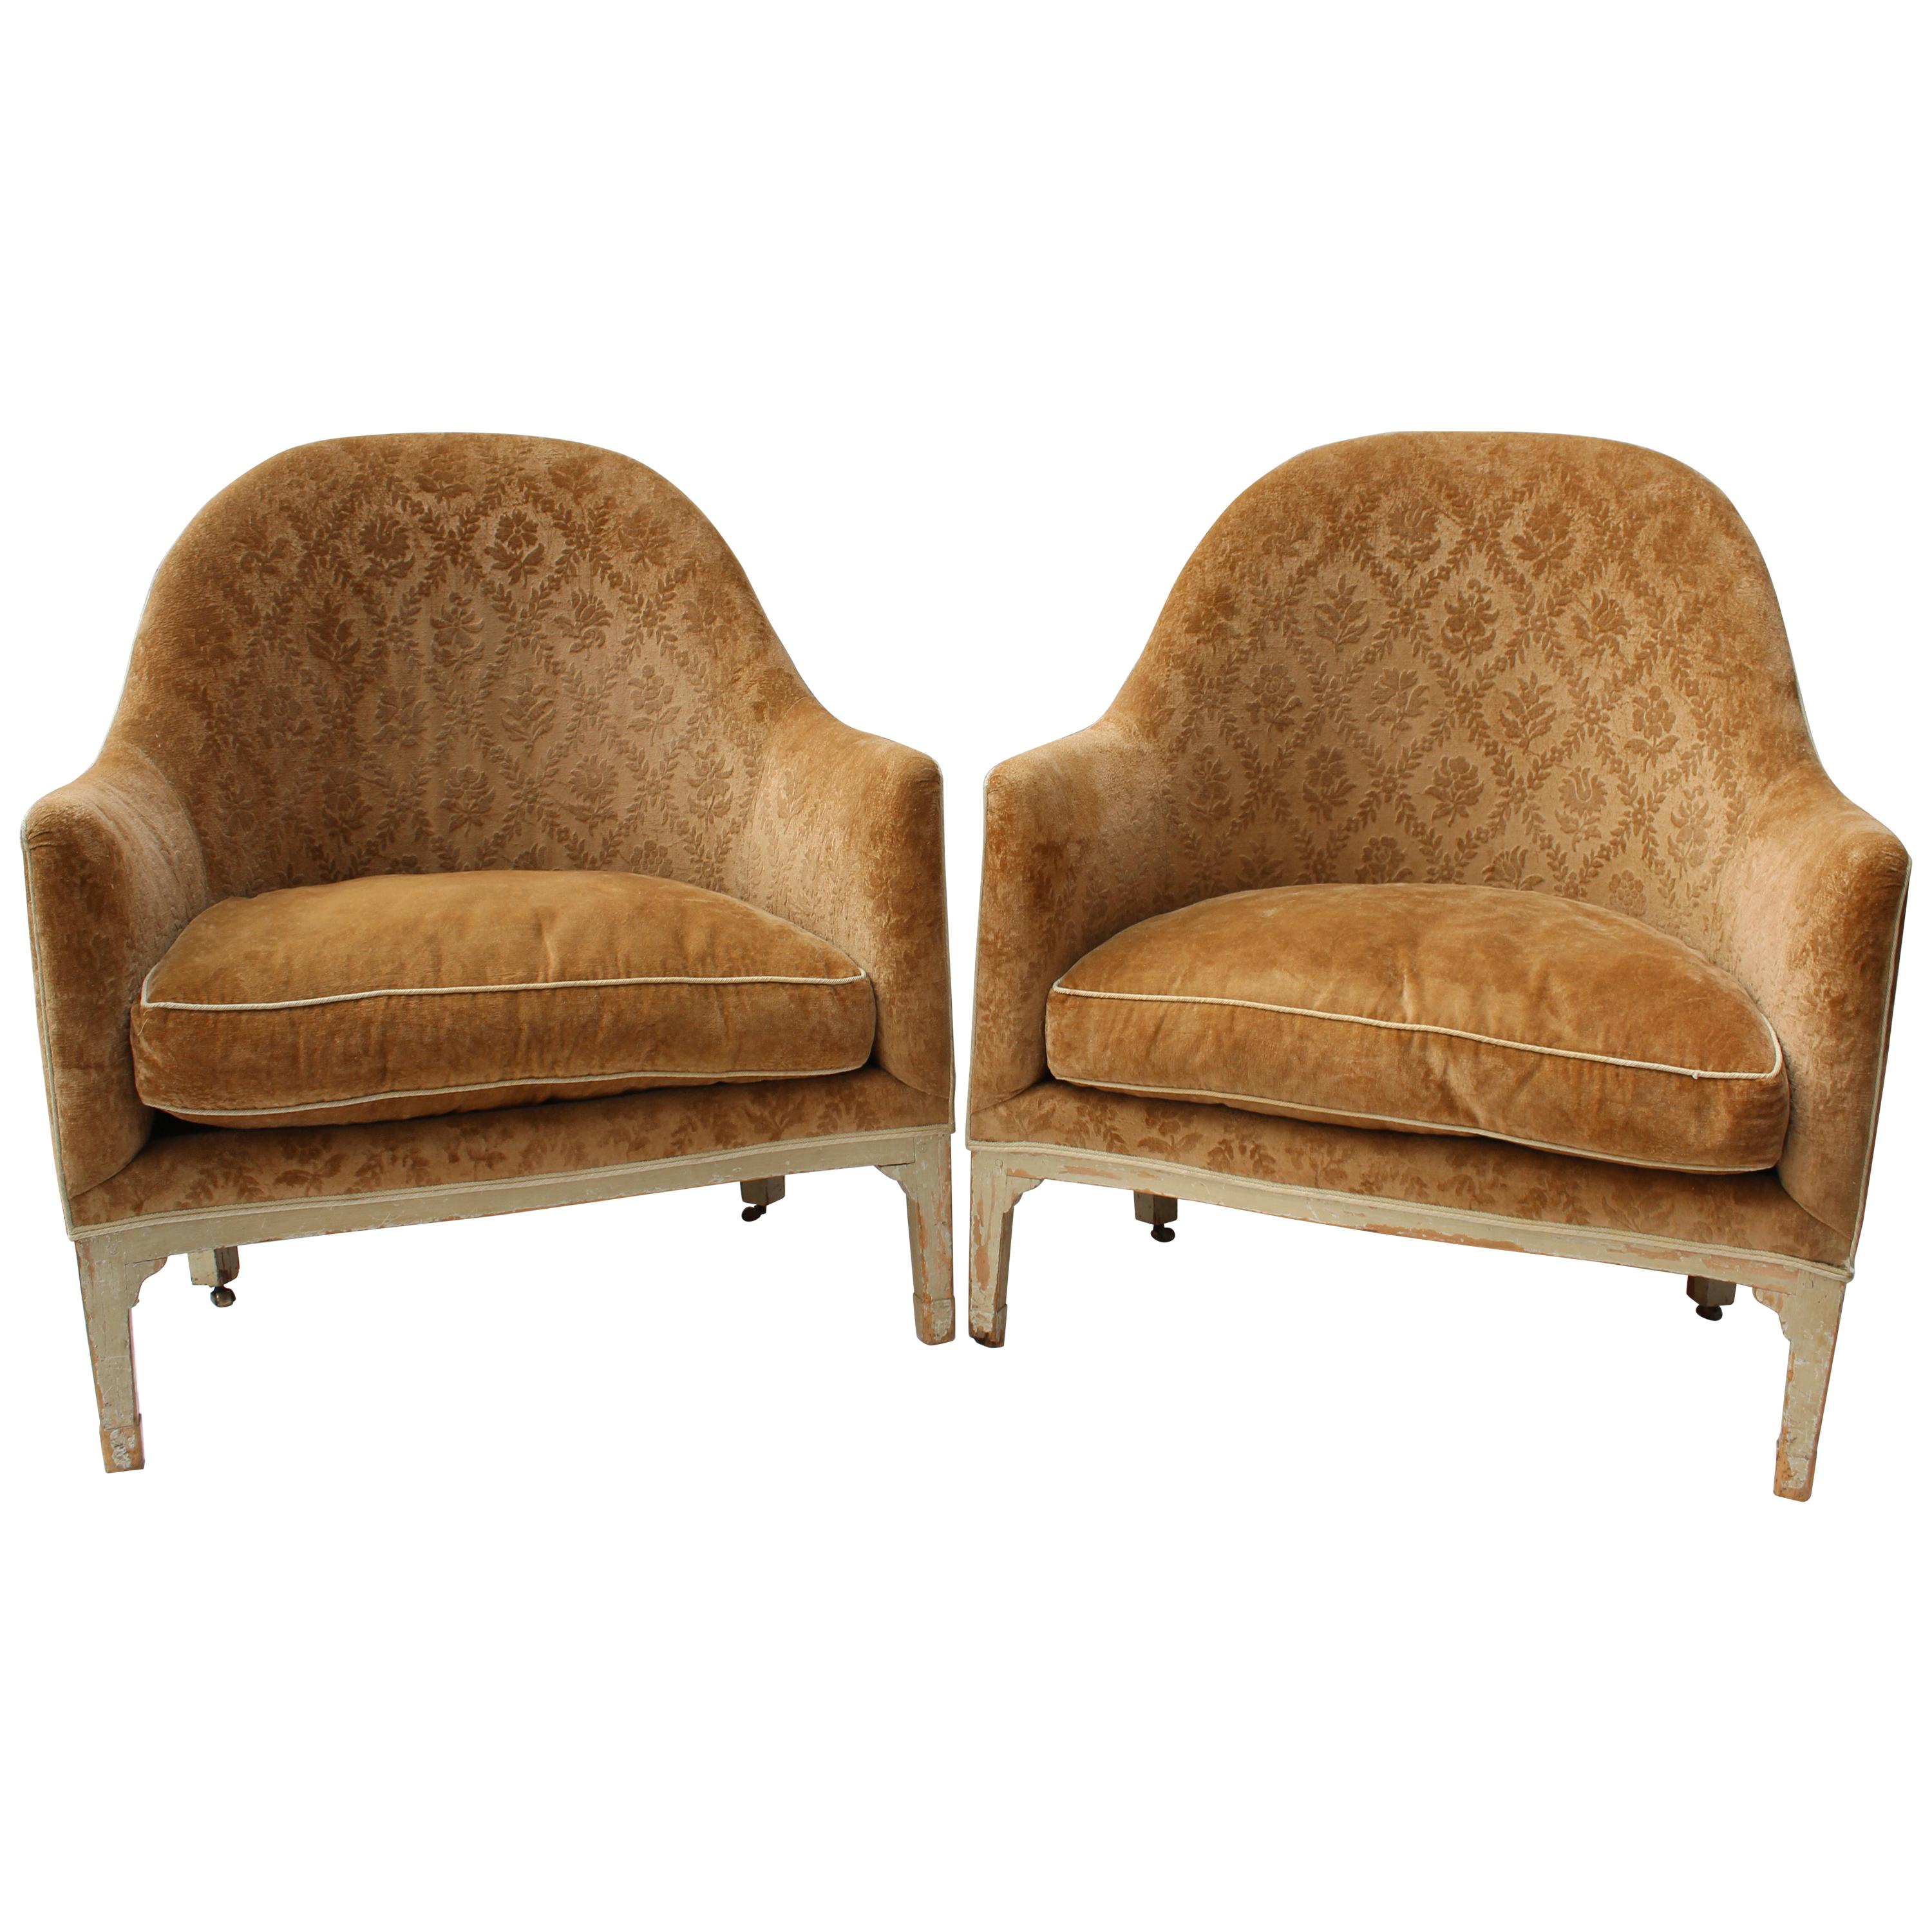 Pair of Large 19th Century French Louis XVI Style Bergere Chairs